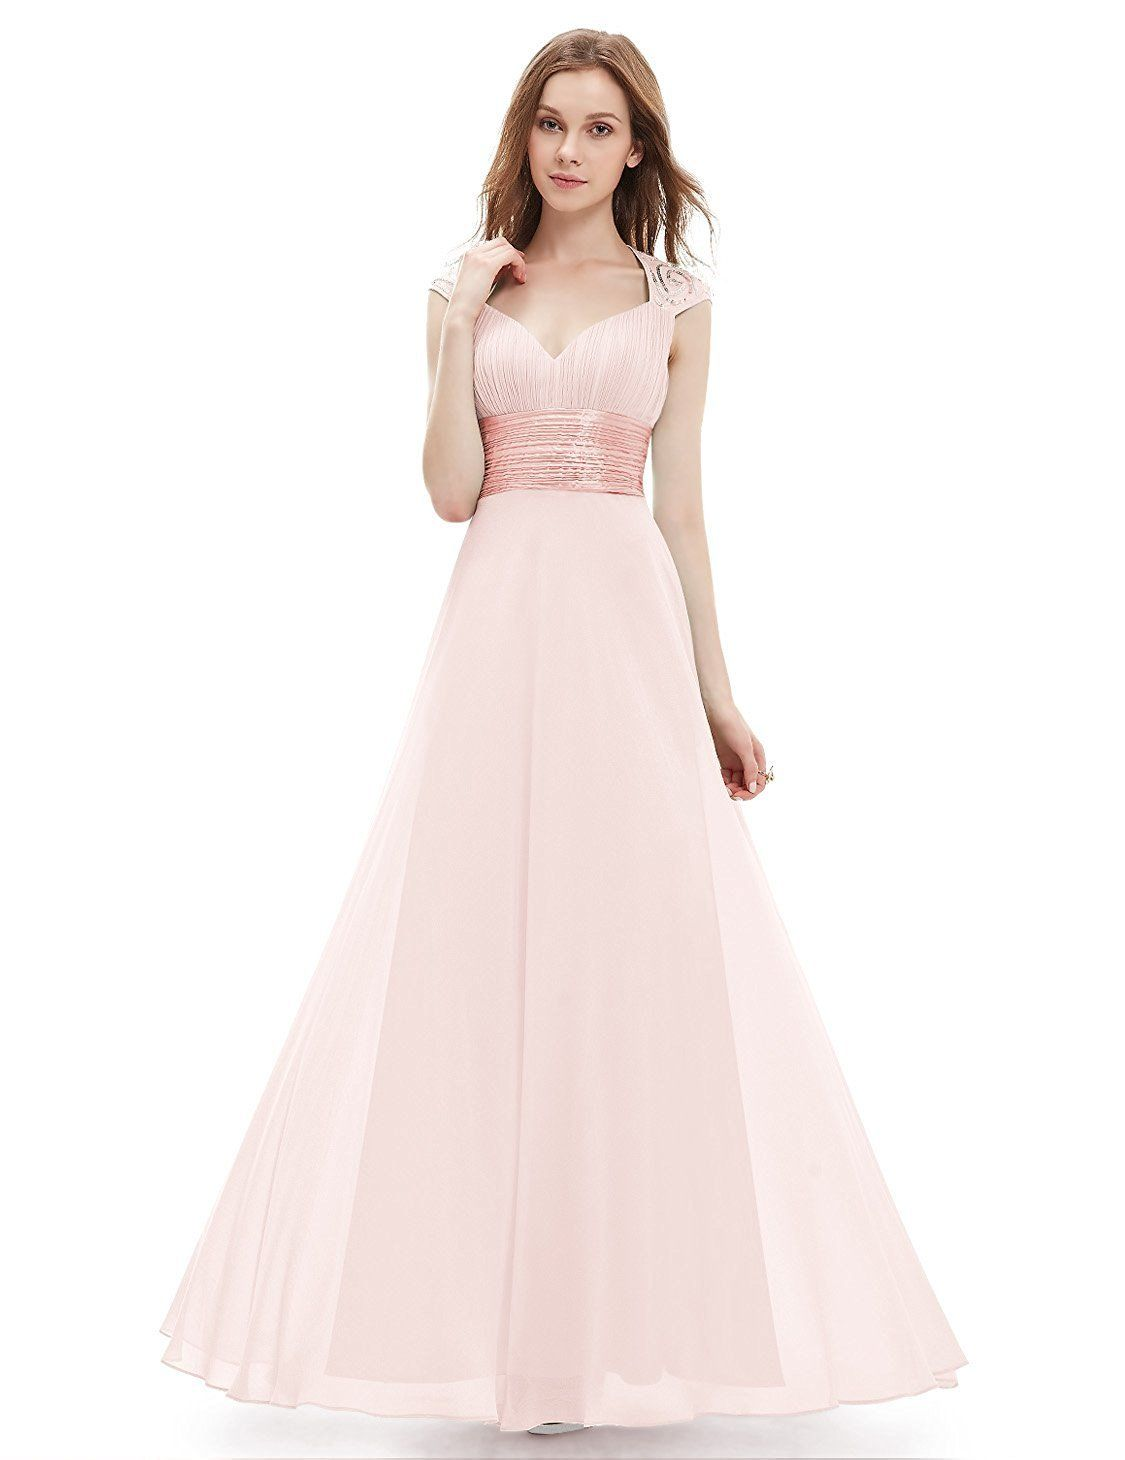 Long formal mother of the bride dress bride dresses and products